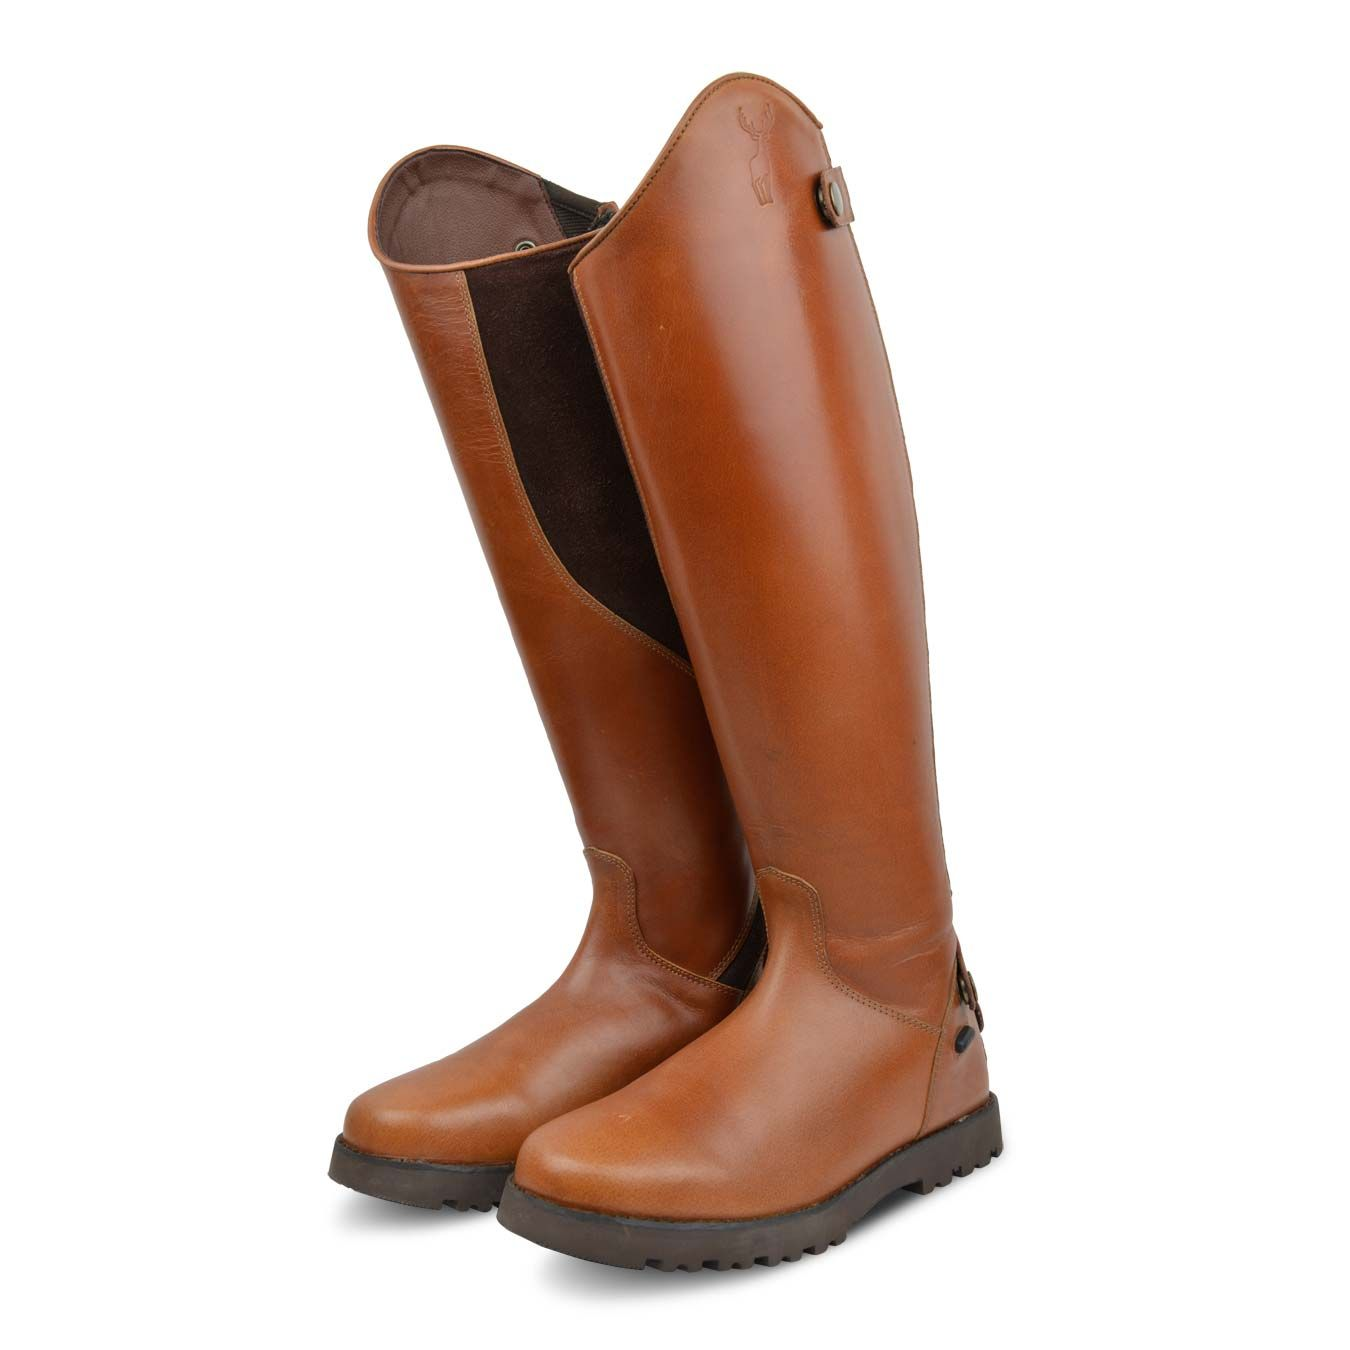 fc34f94404aaa New and exclusive to Derby House, these Kinpurnie Fife Long Riding Boots  are crafted using smooth buff leather uppers and microsuede shaped calf  area for ...